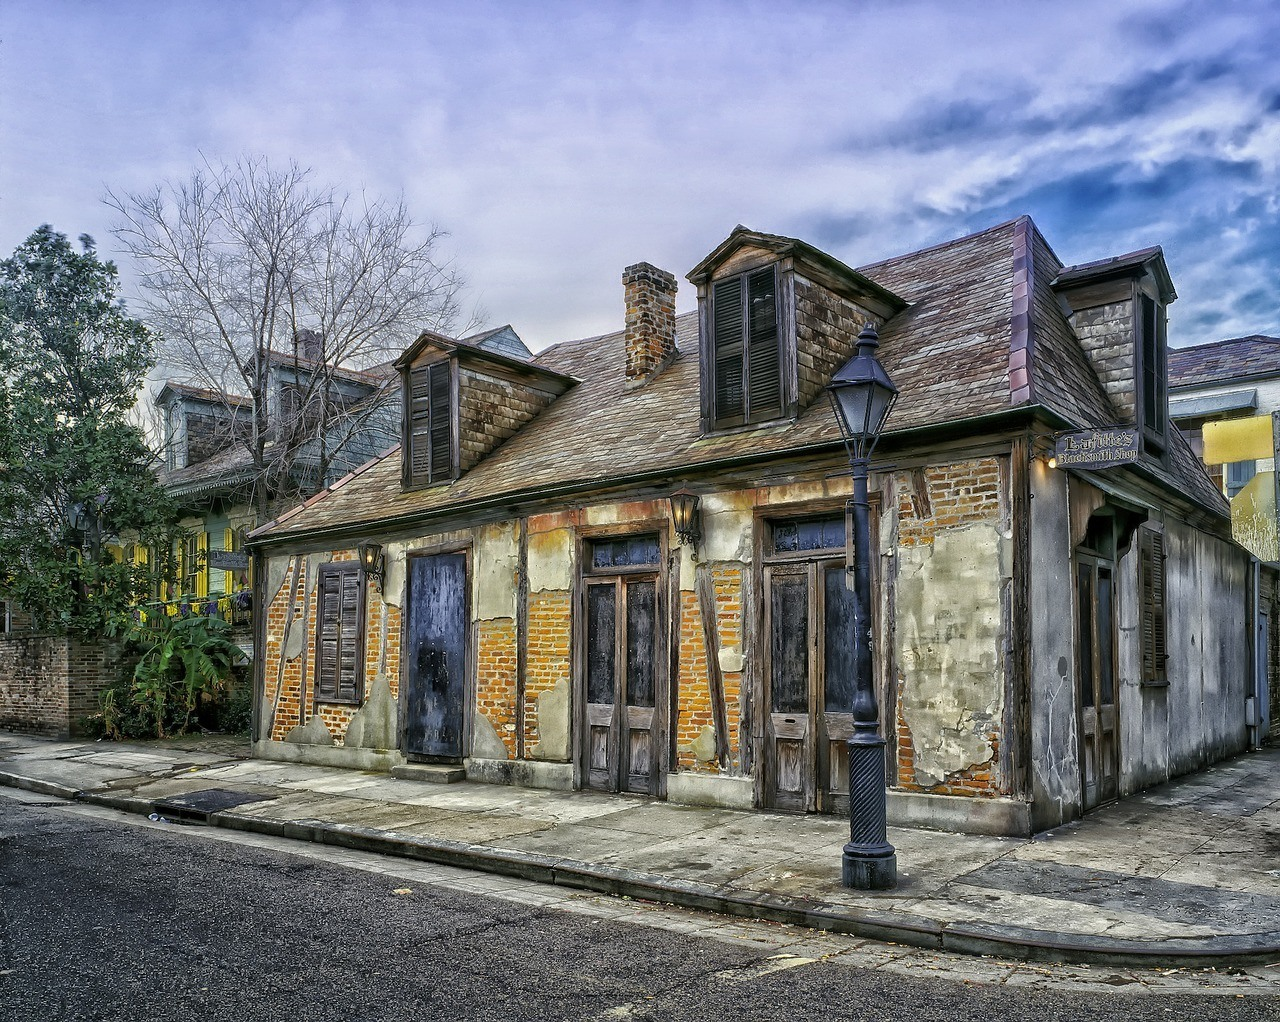 The oldest bars in the US, Lafitte's Blacksmith Shop.